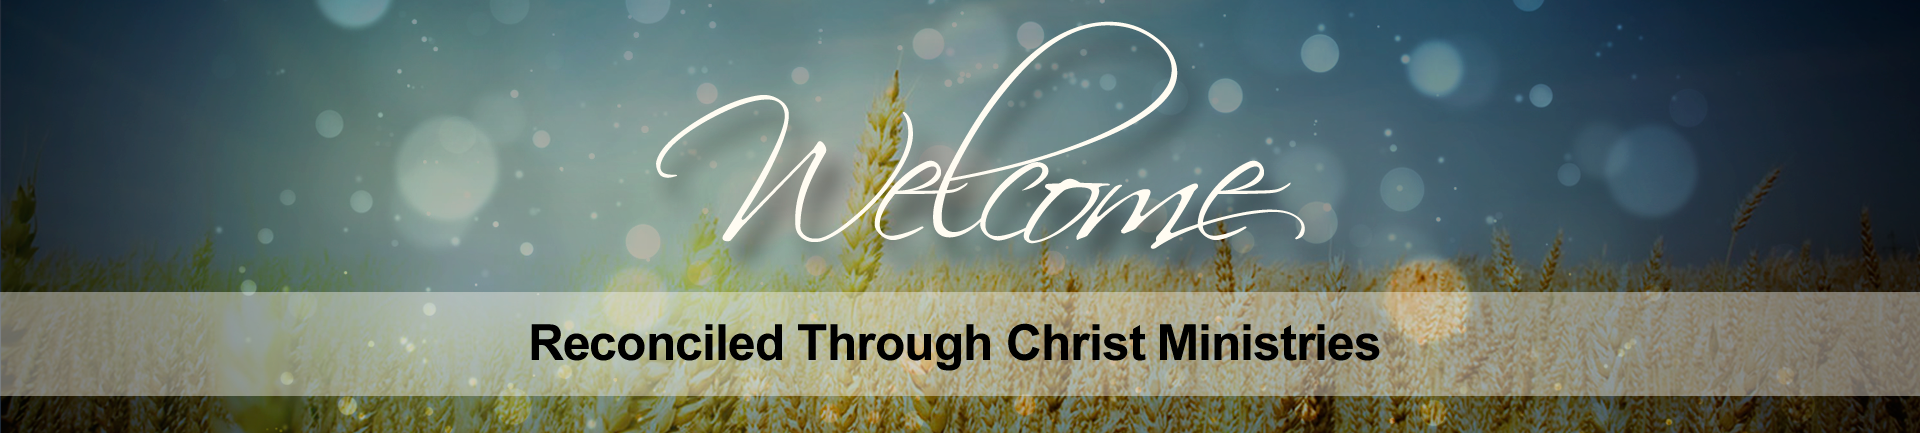 Reconciled Through Christ Ministries